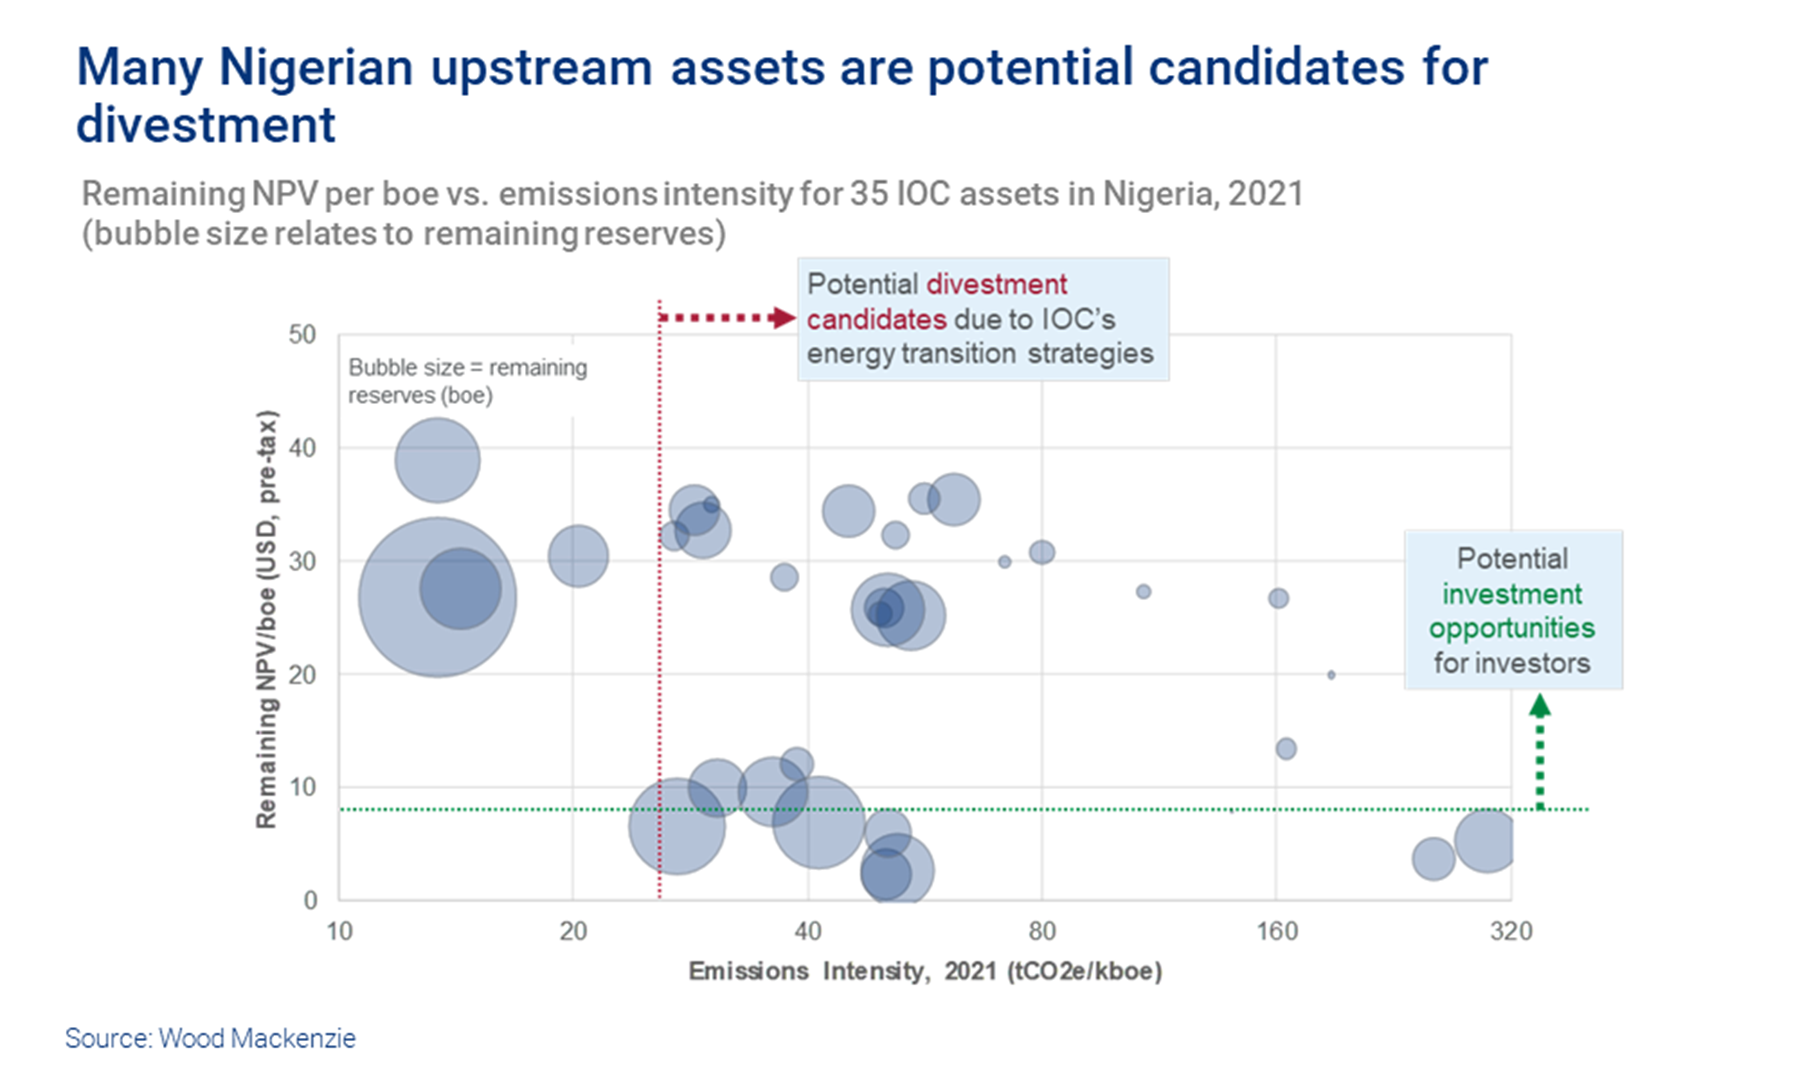 Chart shows Remaining NPV per boe vs. emissions intensity for 35 IOC assets in Nigeria, 2021. Many Nigerian upstream assets are potential candidates for divestment.